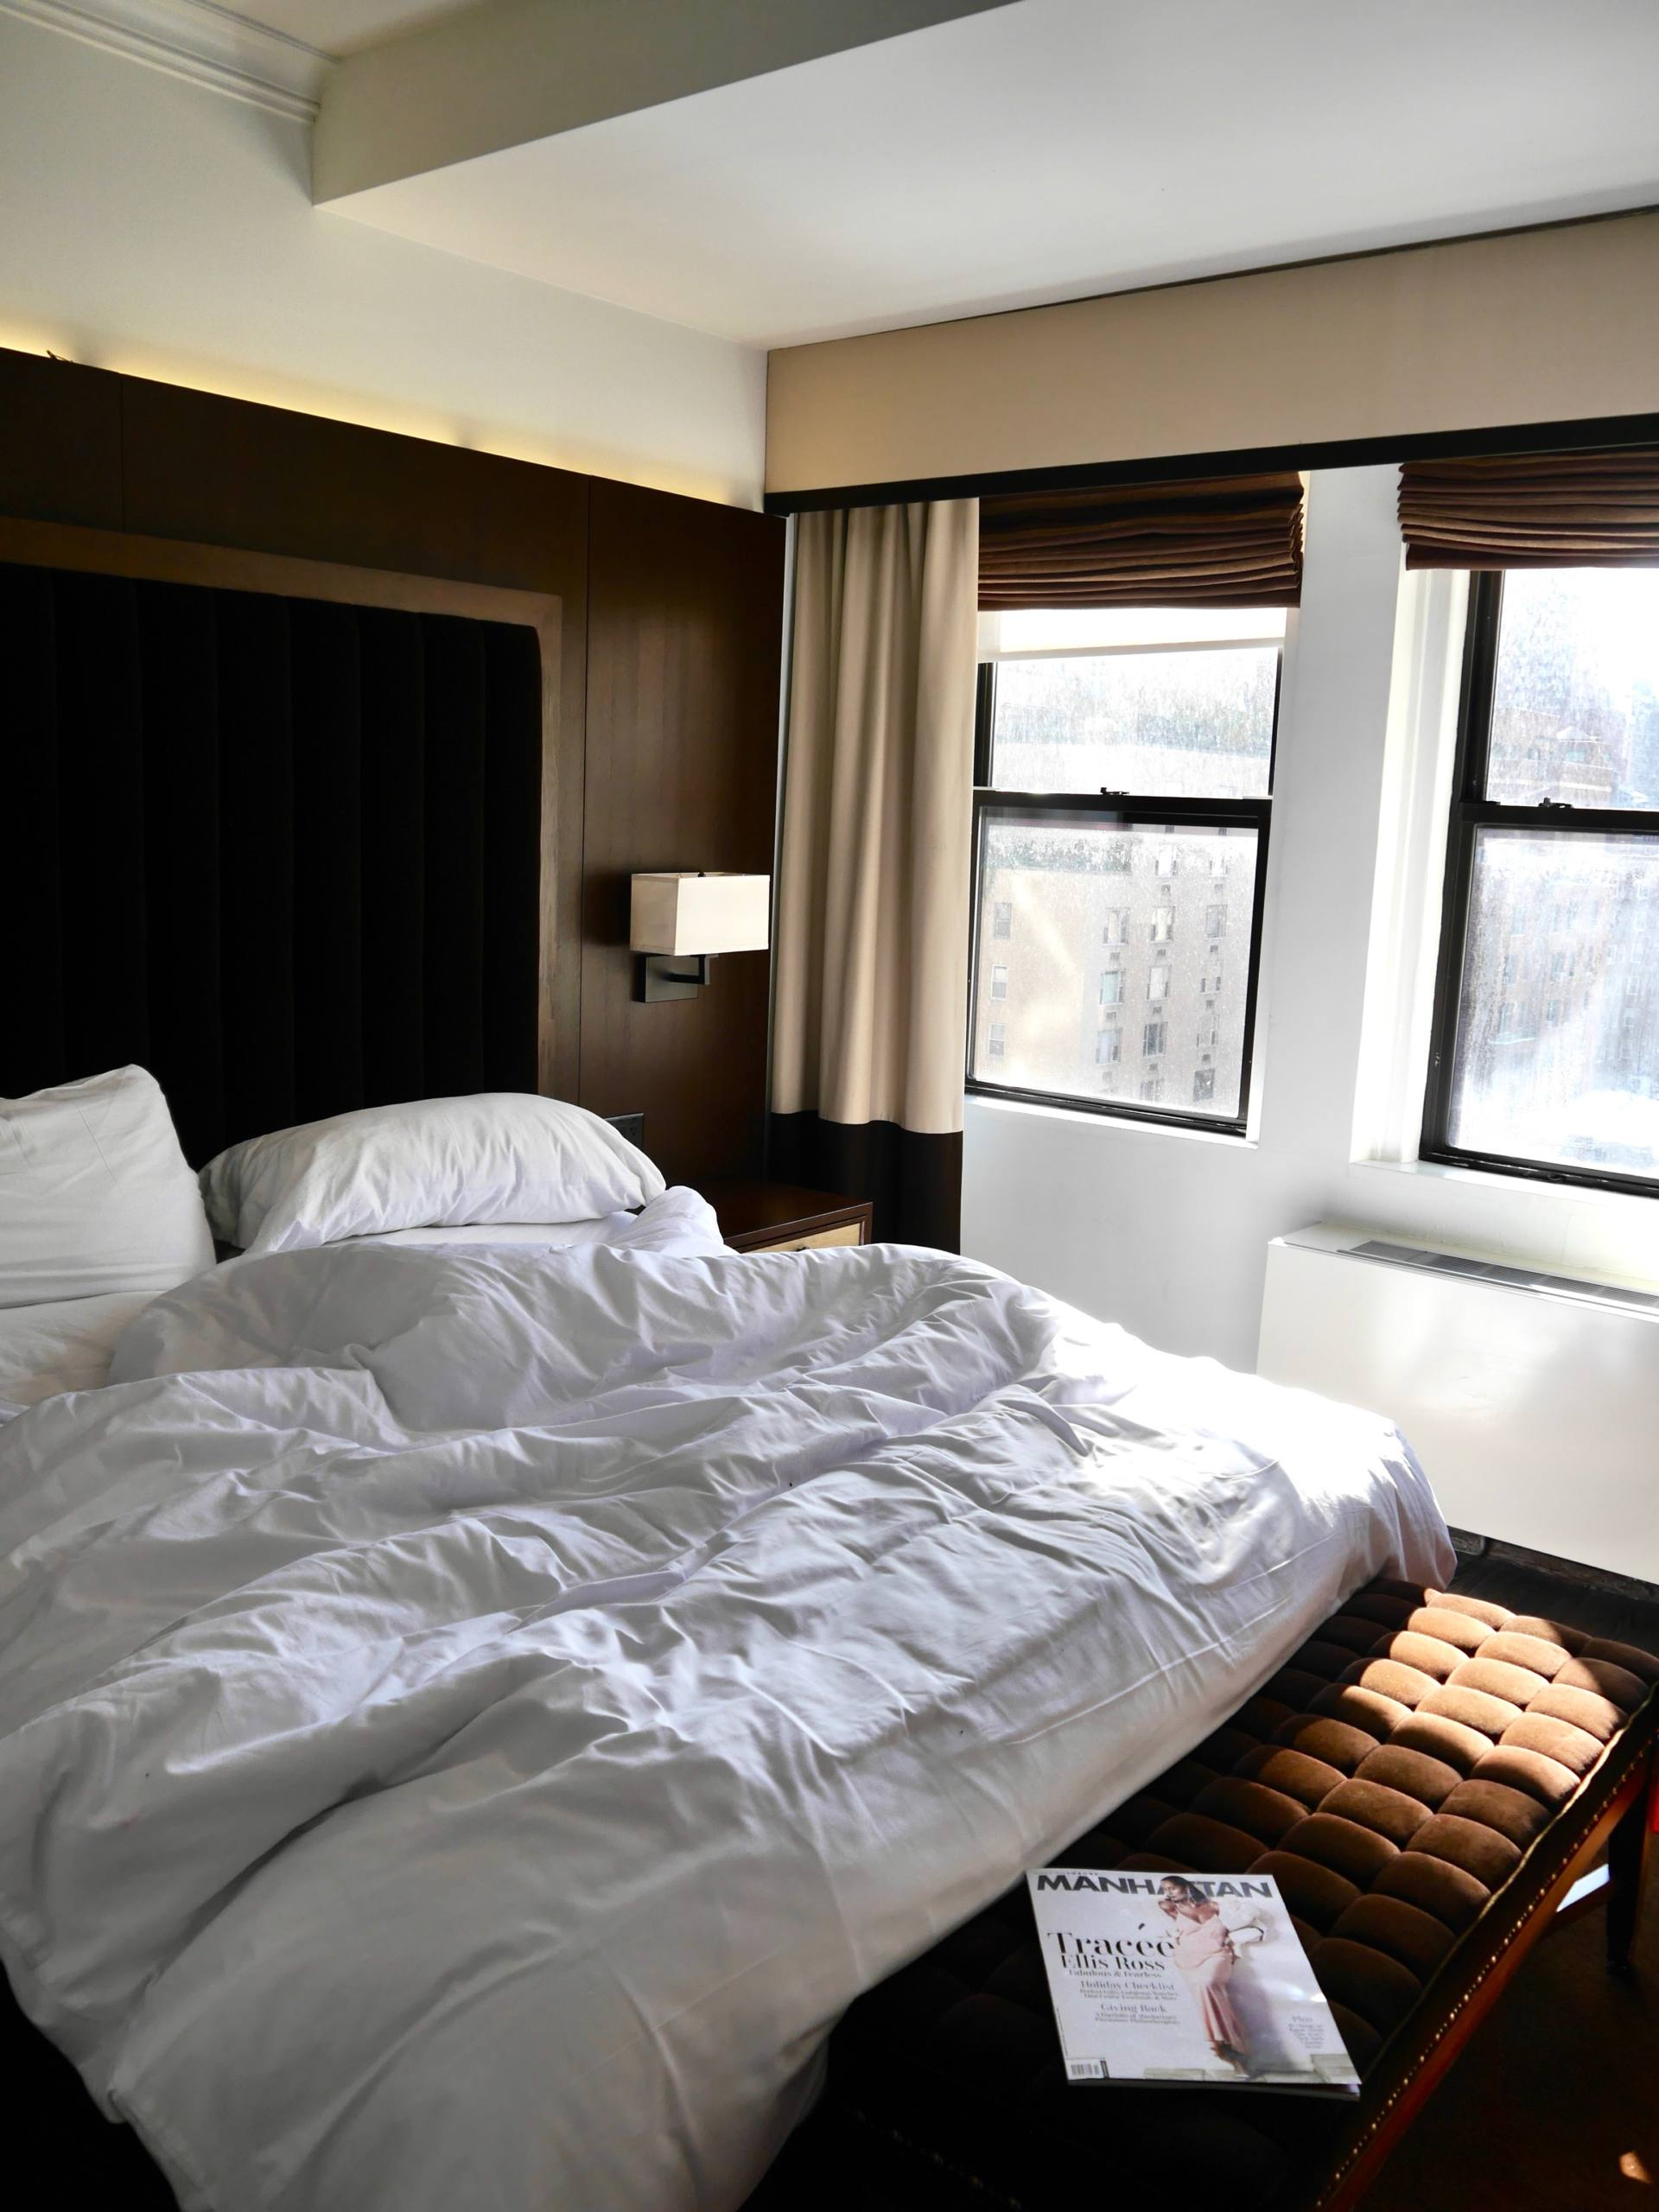 New York Hotel Amazon Offer 2020